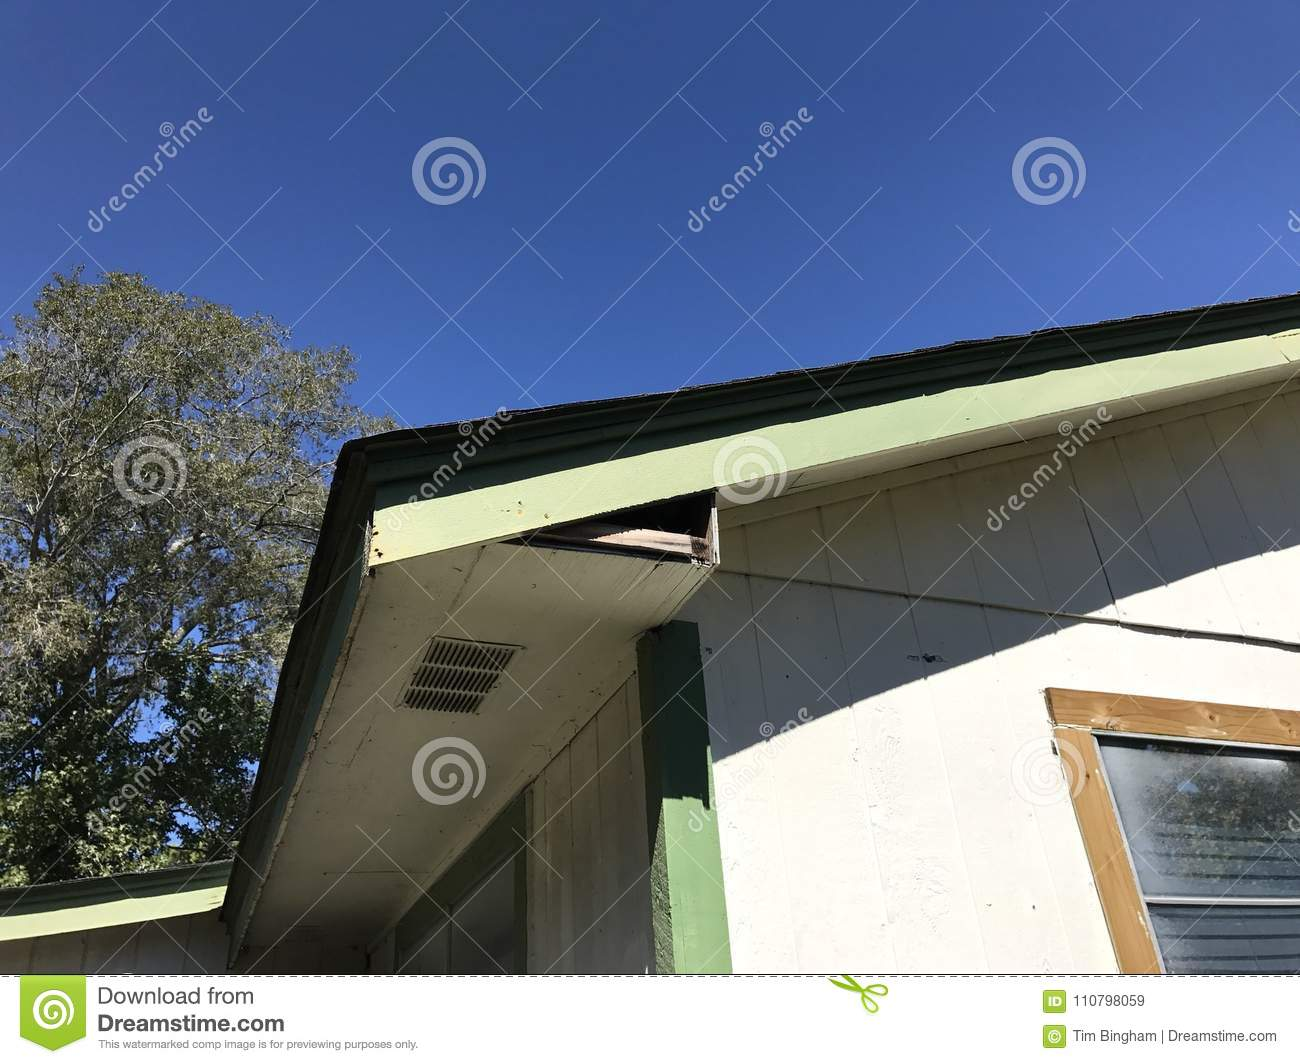 Fascia in need of repair stock image  Image of construction - 110798059